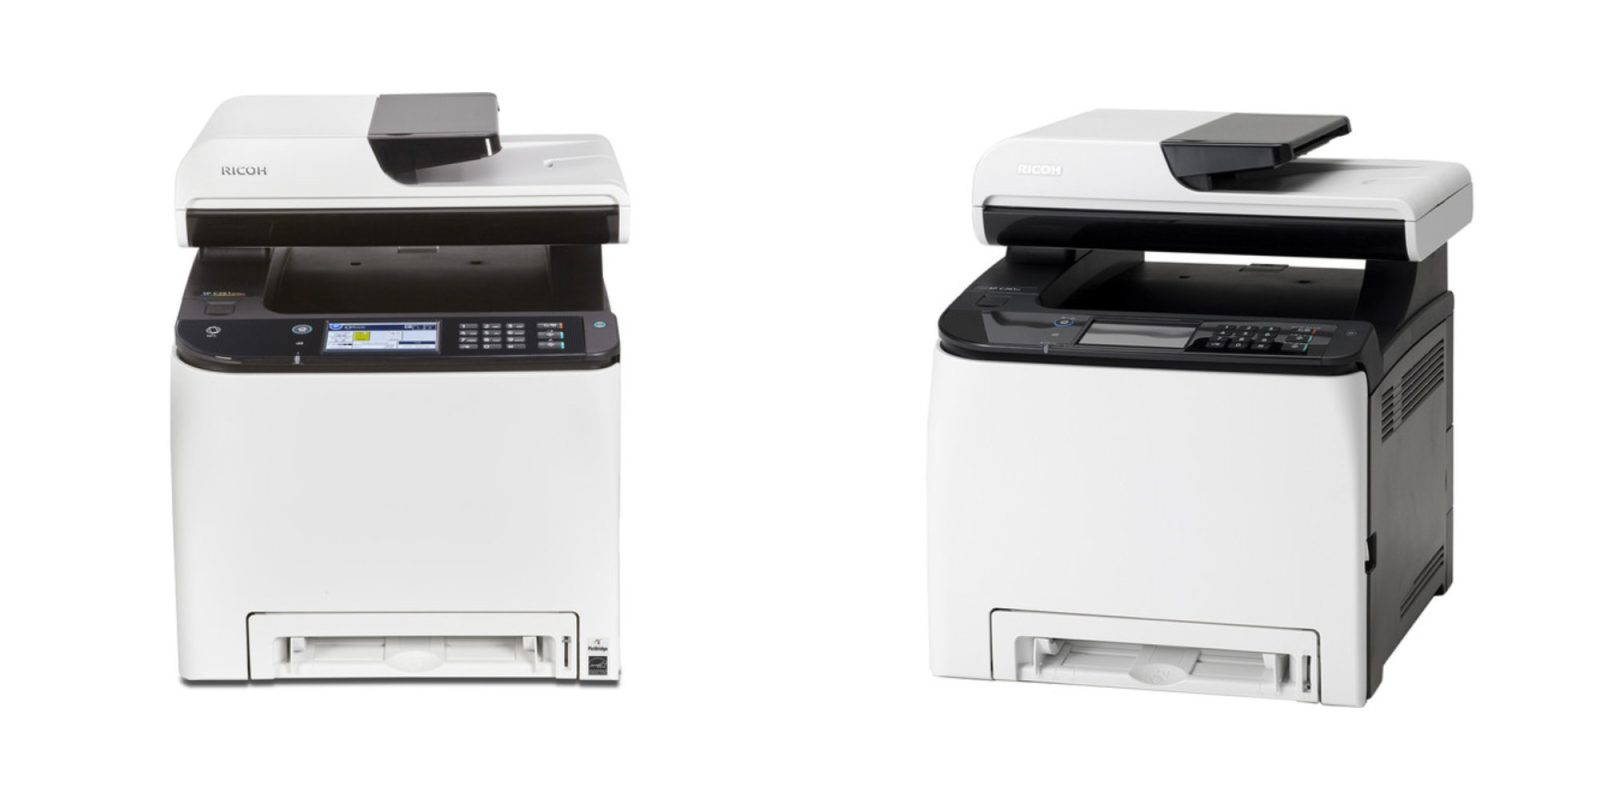 Ricoh's color laser AiO packs AirPrint + more for $140 (Reg. up to $200)